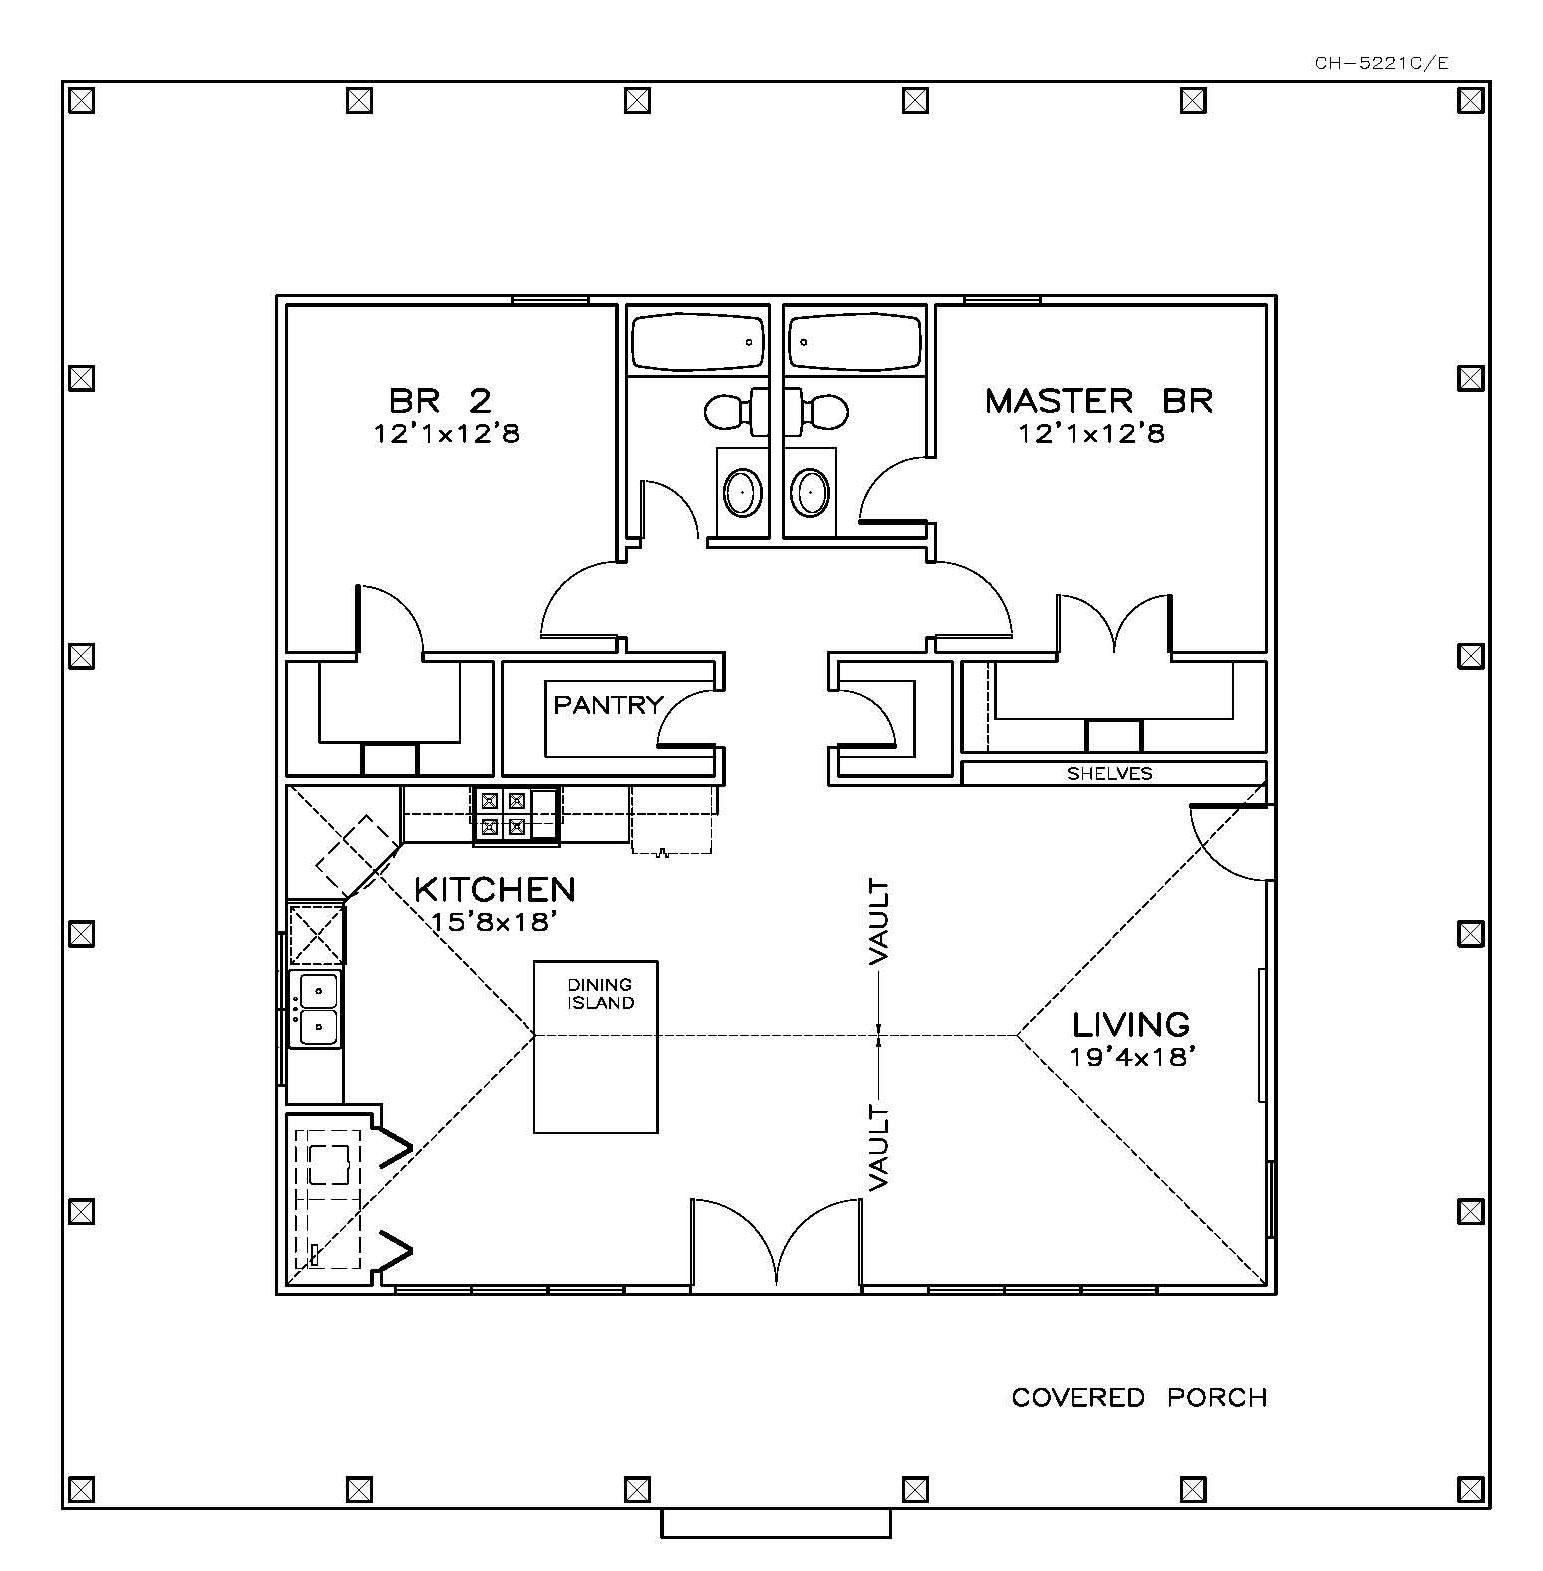 Bedroom Floor Cold Southern Home Plan 2 Bedrms 2 Baths 1225 Sq Ft 155